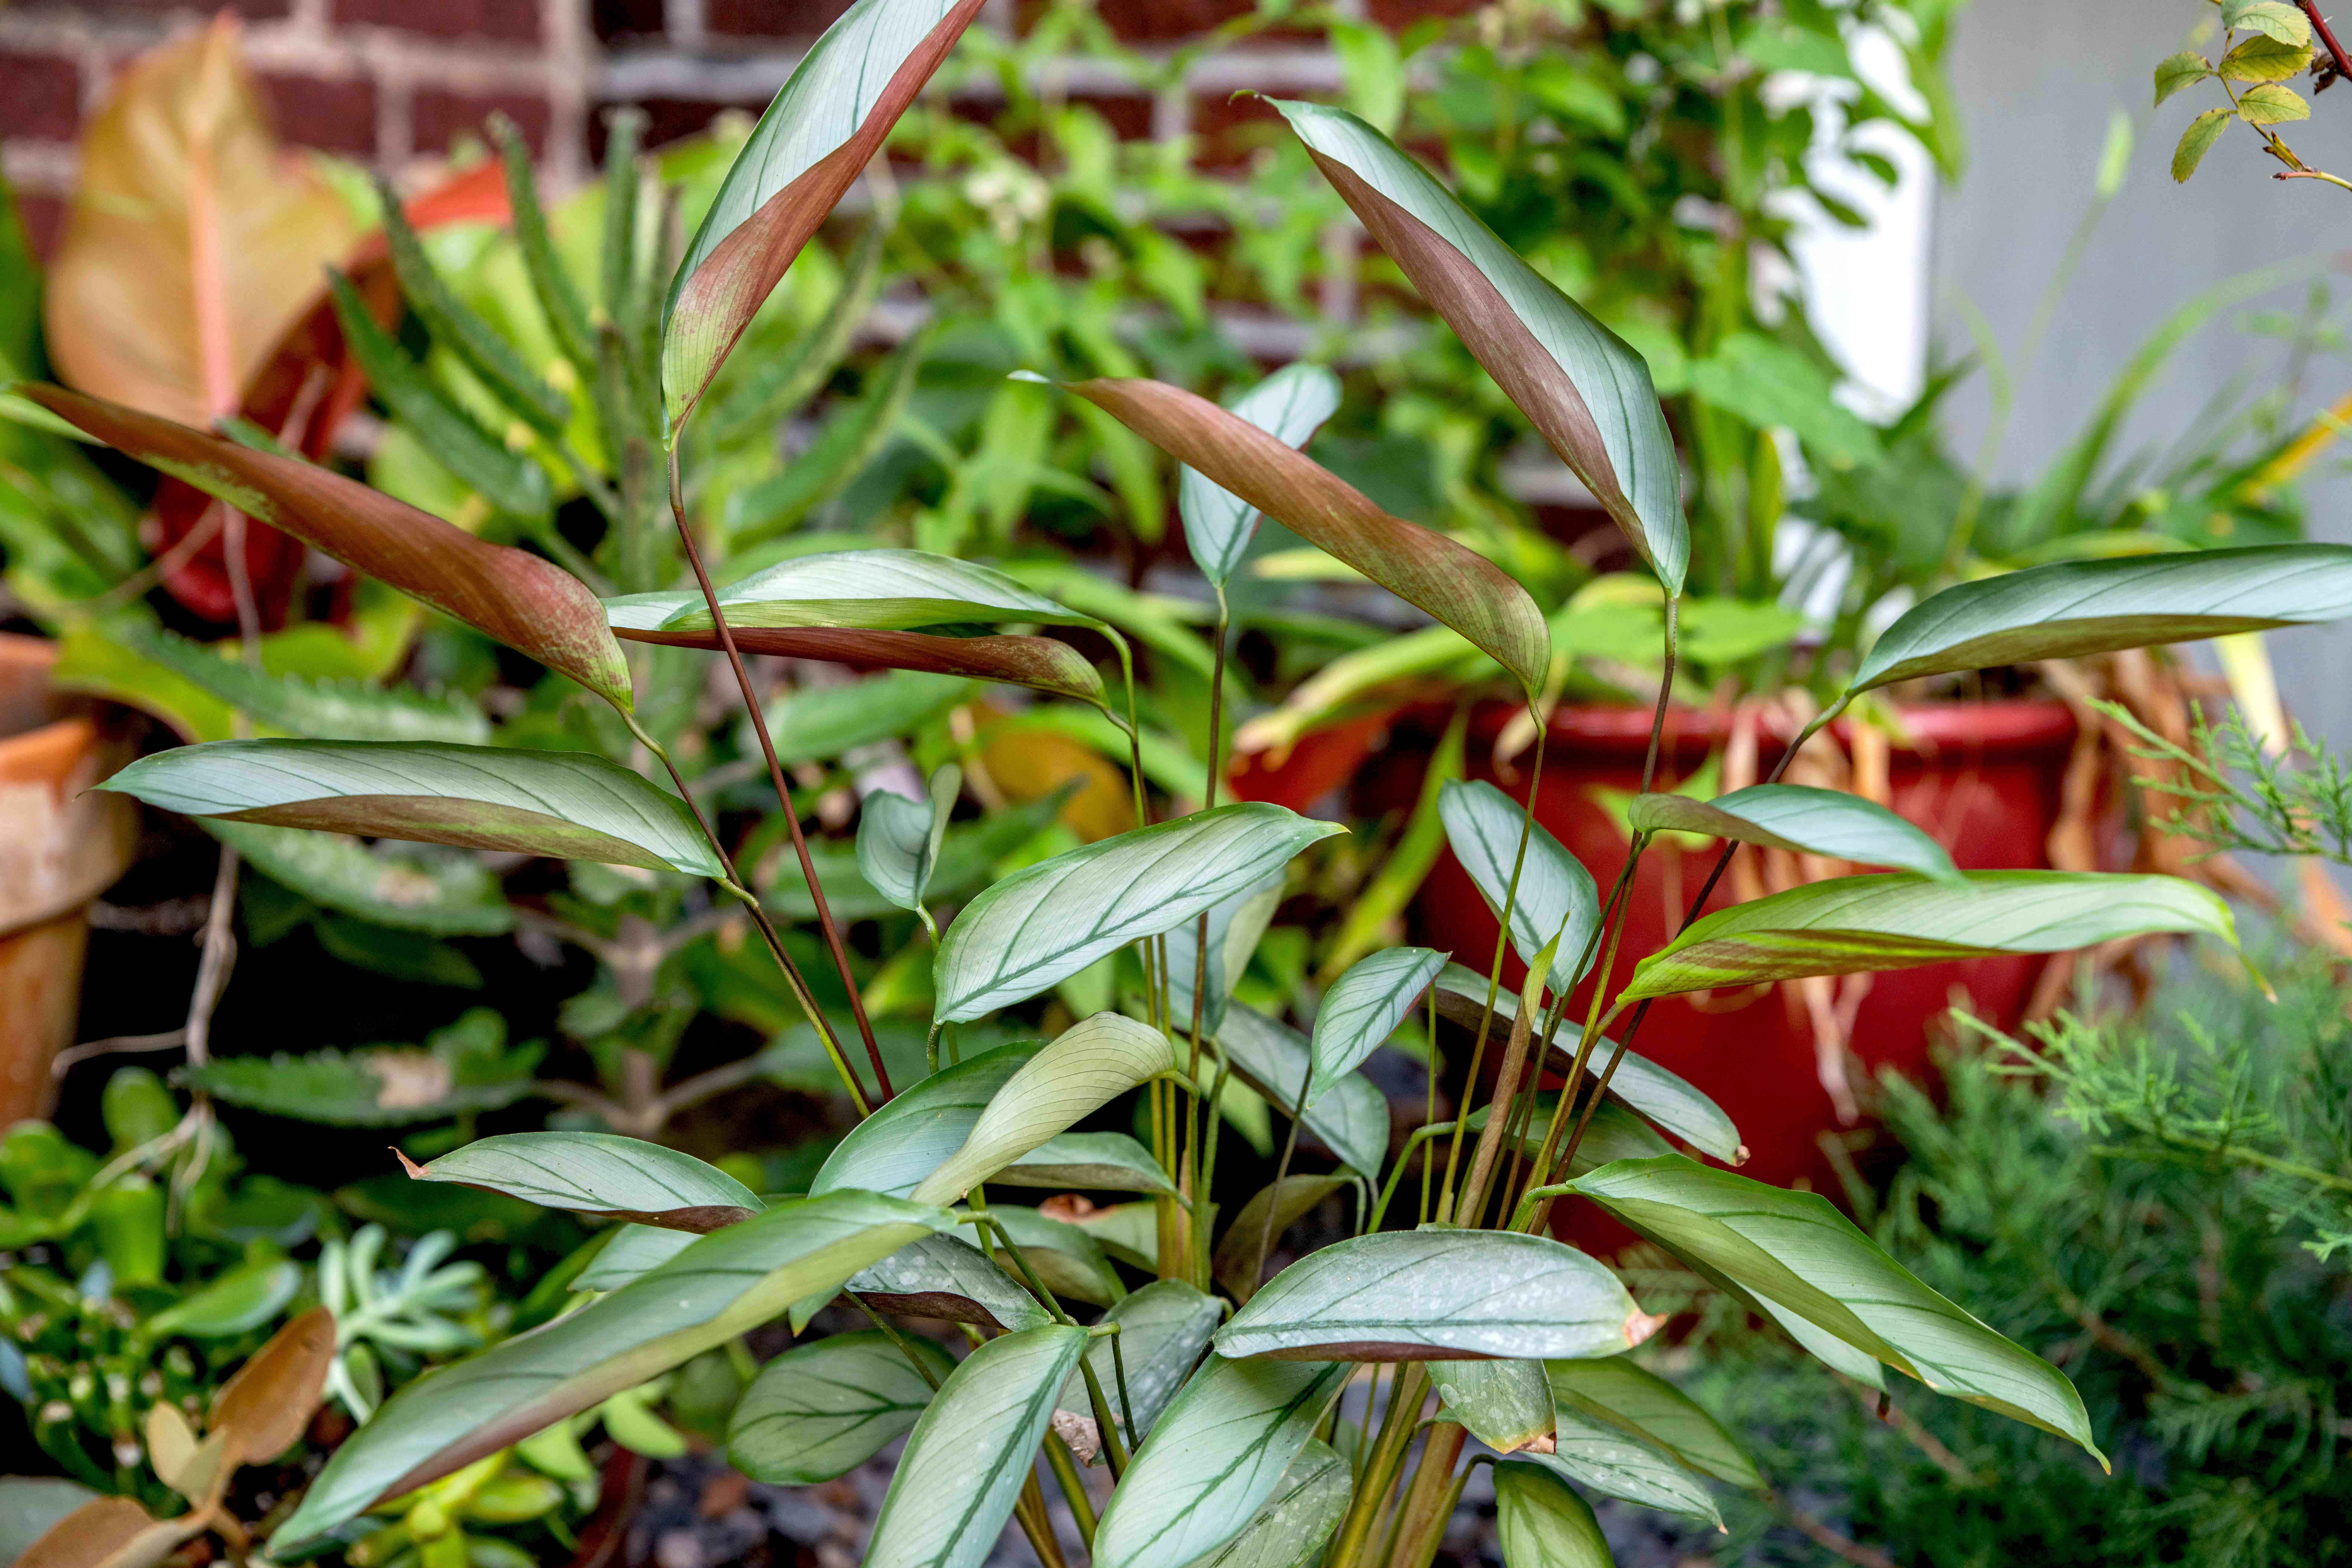 Ctenanthe setosa grey star plant with thin stems and thick clustered leaves in garden